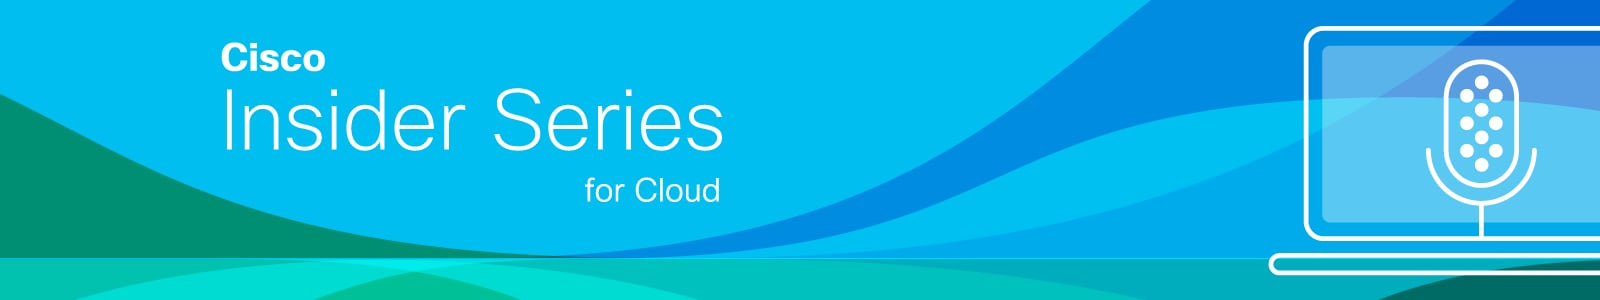 Cisco Insider Series for Cloud